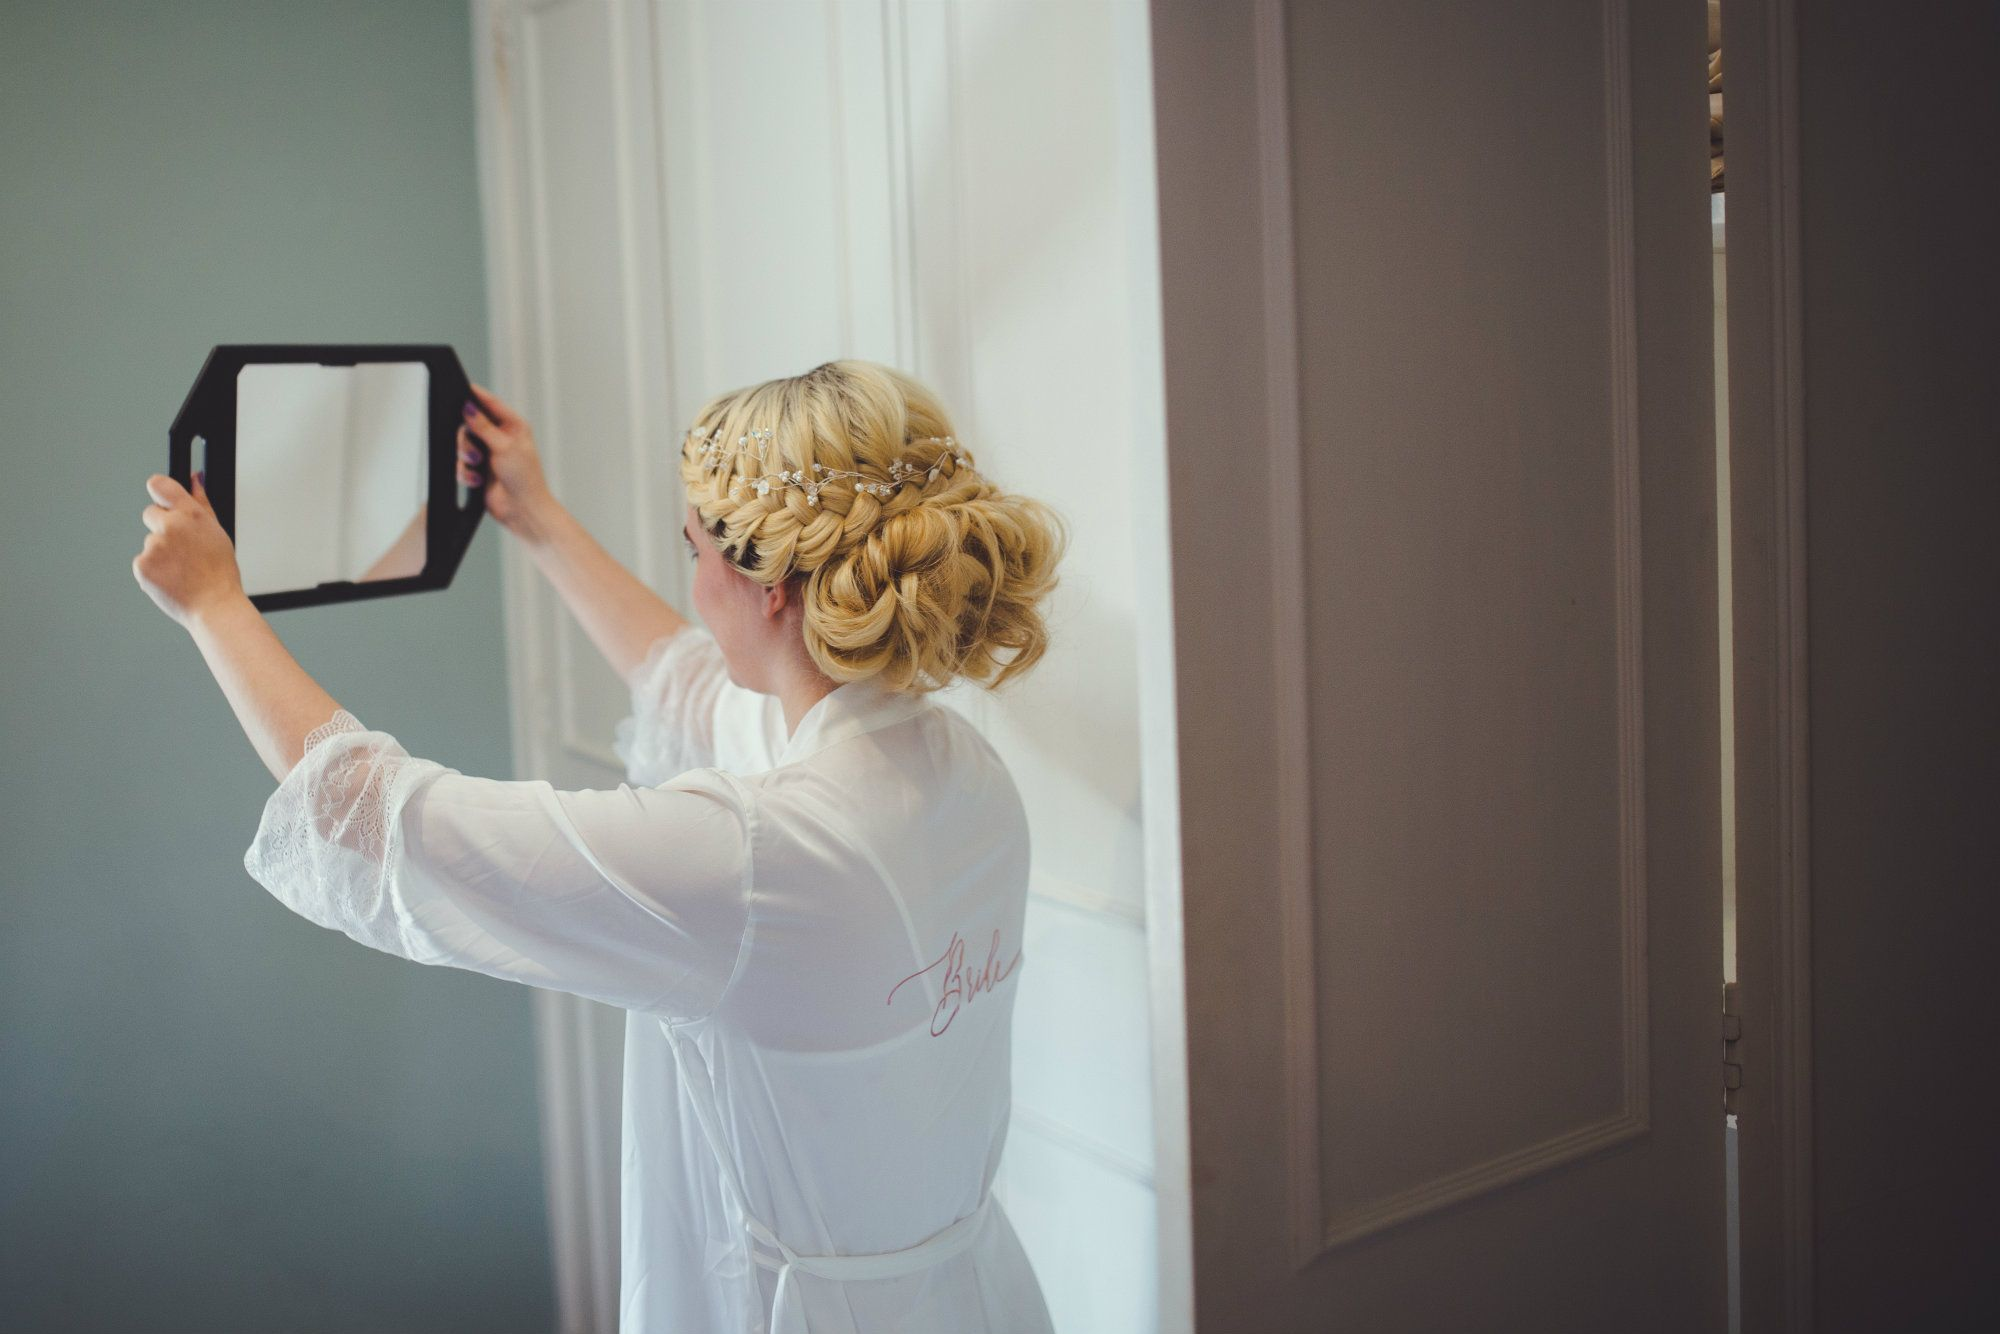 Burford-Oxford-mobile-wedding-hairdresser-Oxfordshire-UK-JEN-17